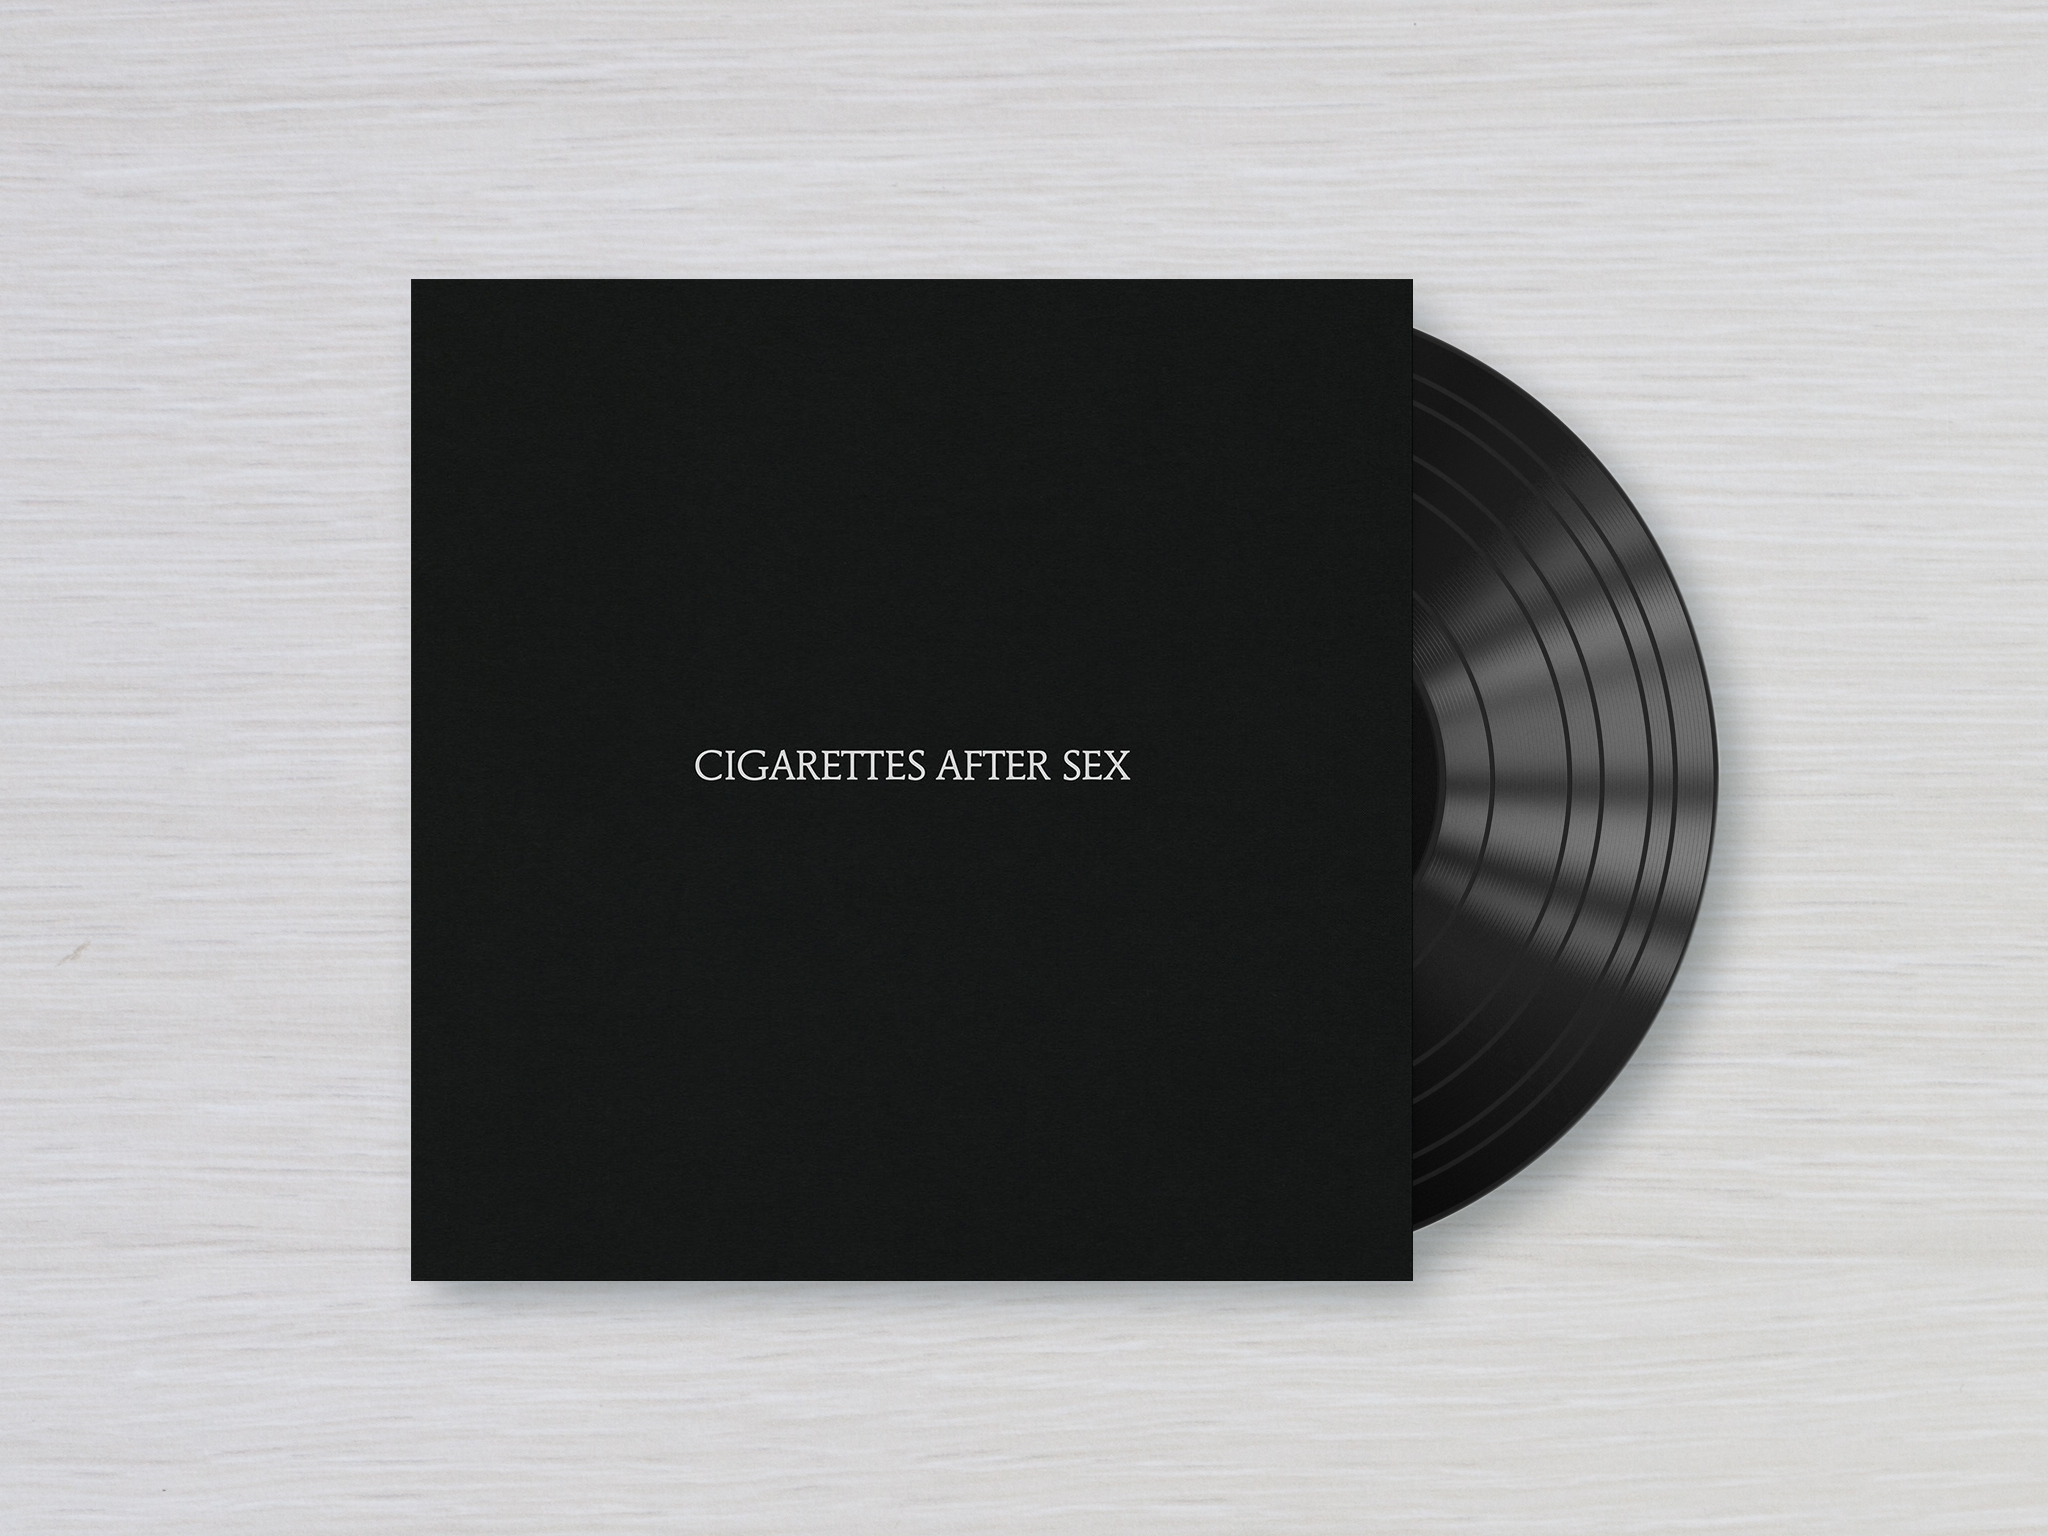 Cigarettes After Sex lanza su disco debut